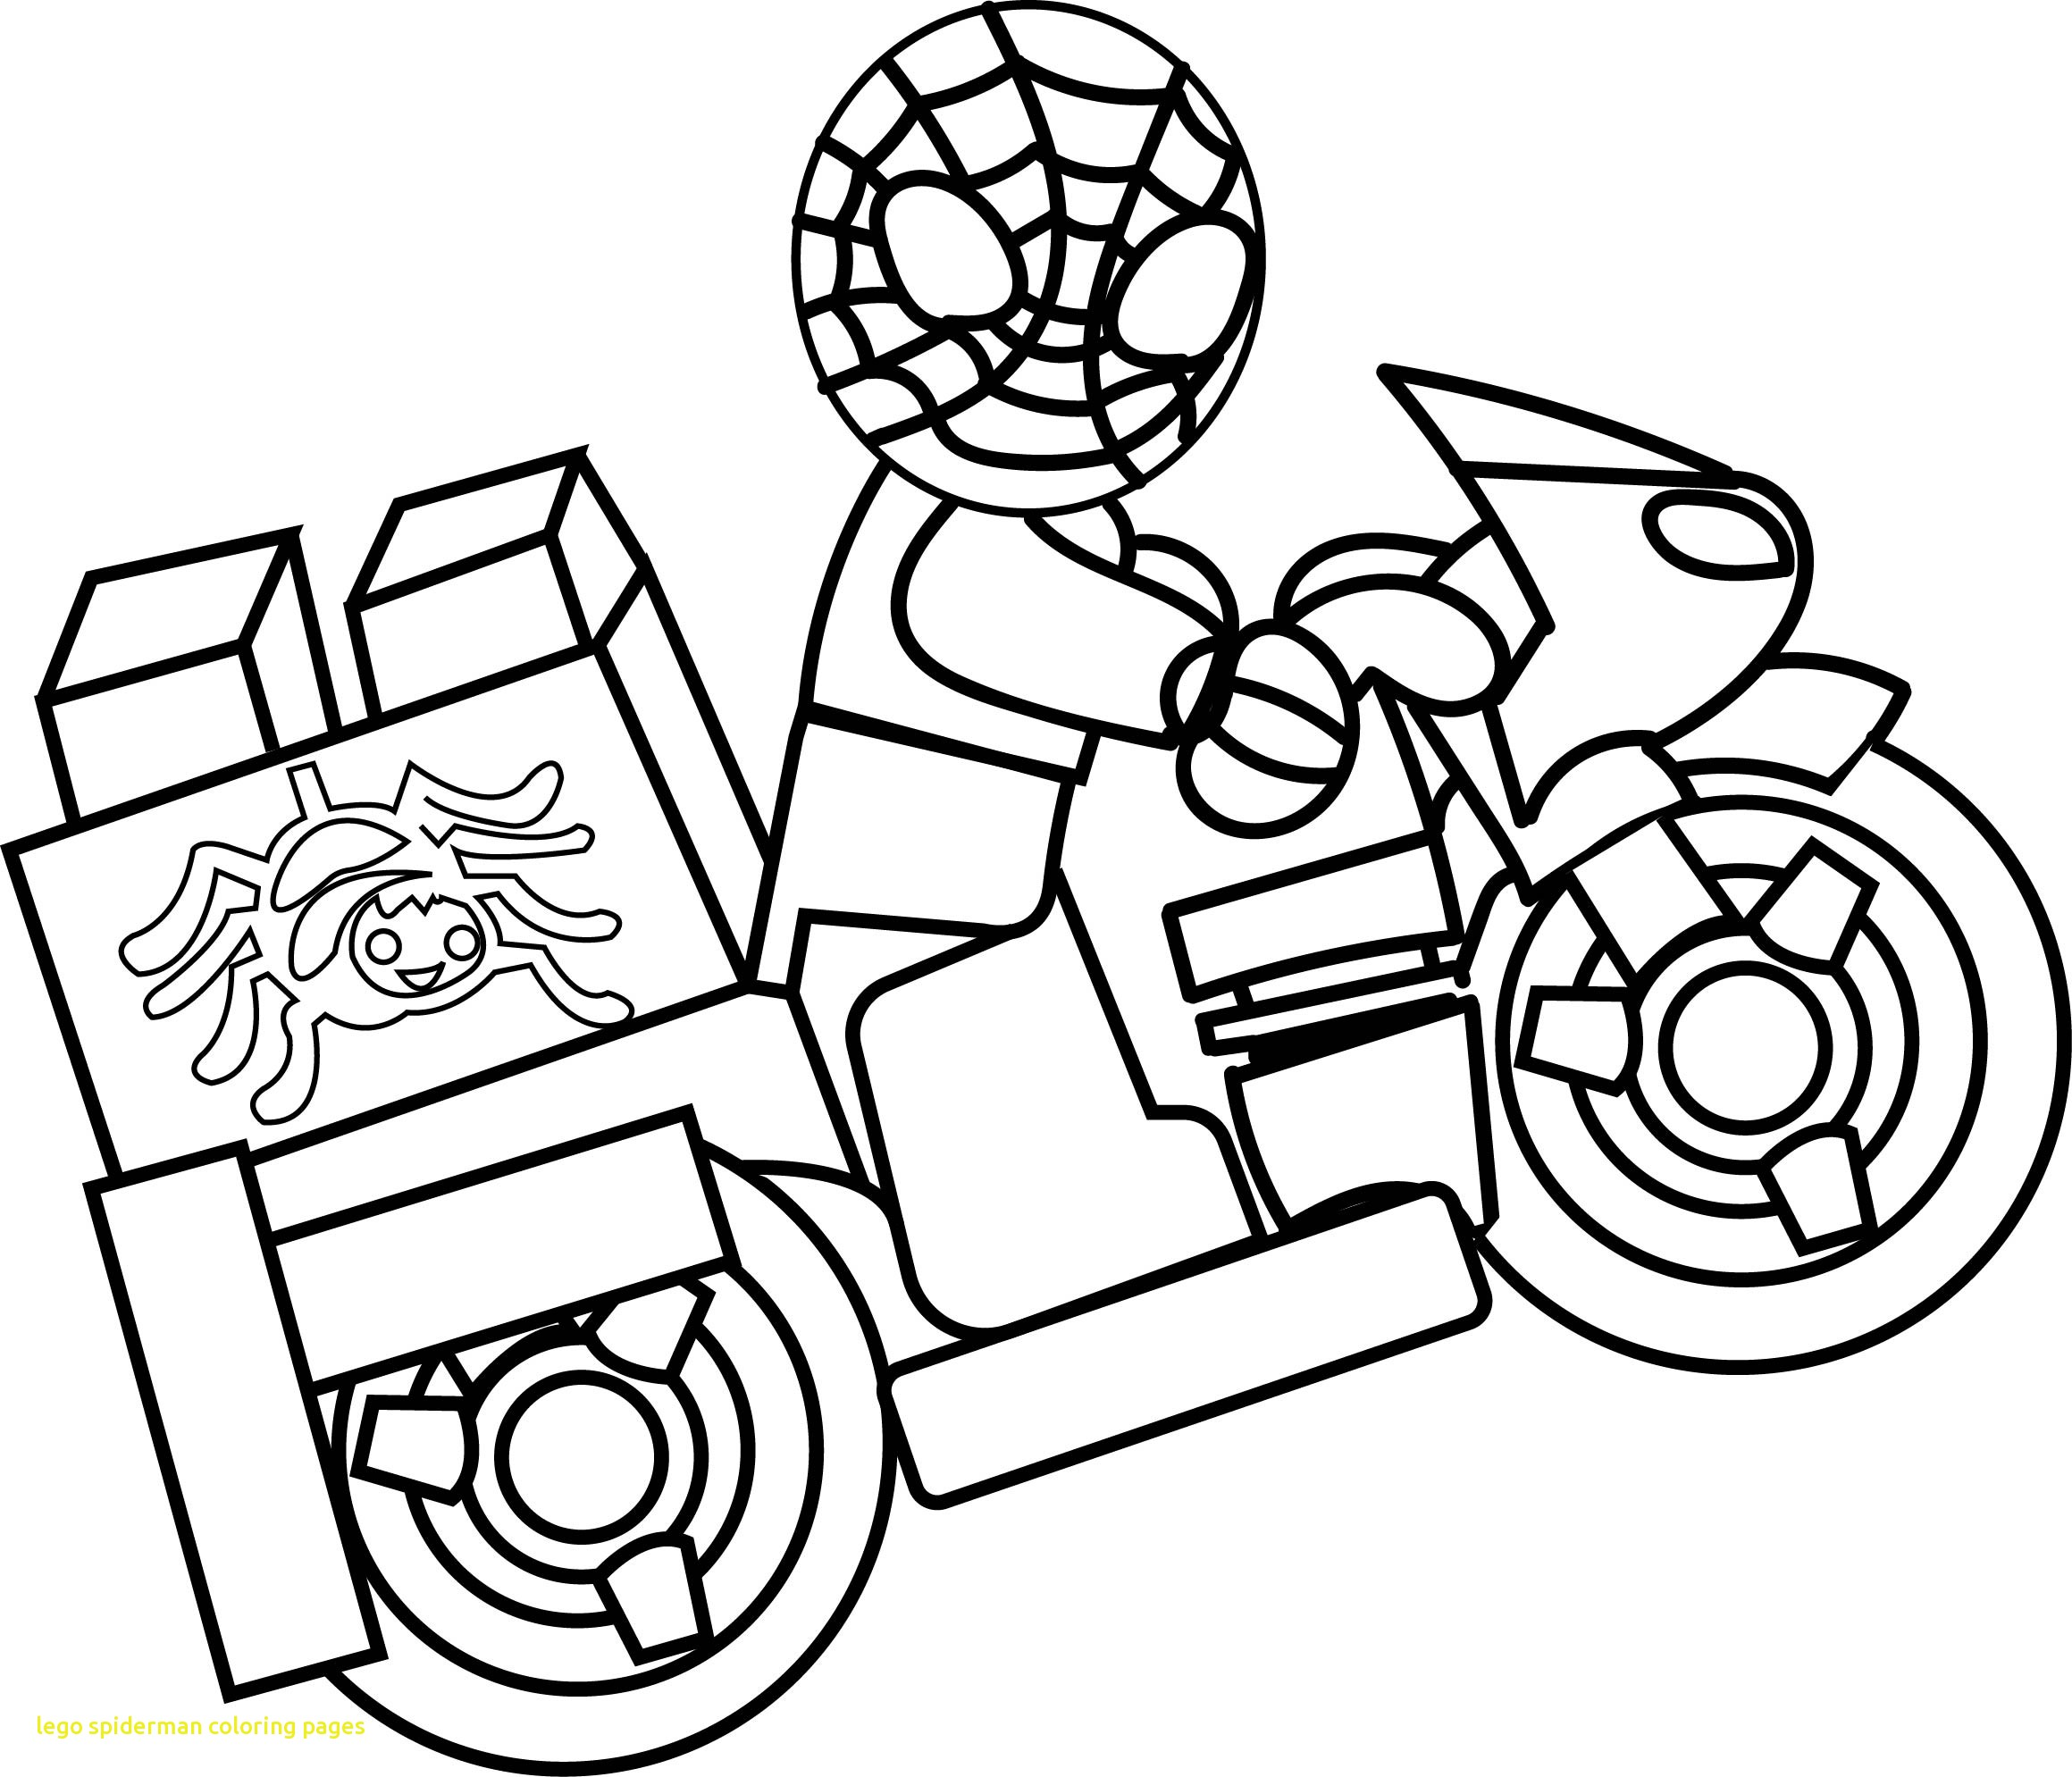 2319x1989 Lego Spiderman Coloring Pages With Lego Spiderman Coloring